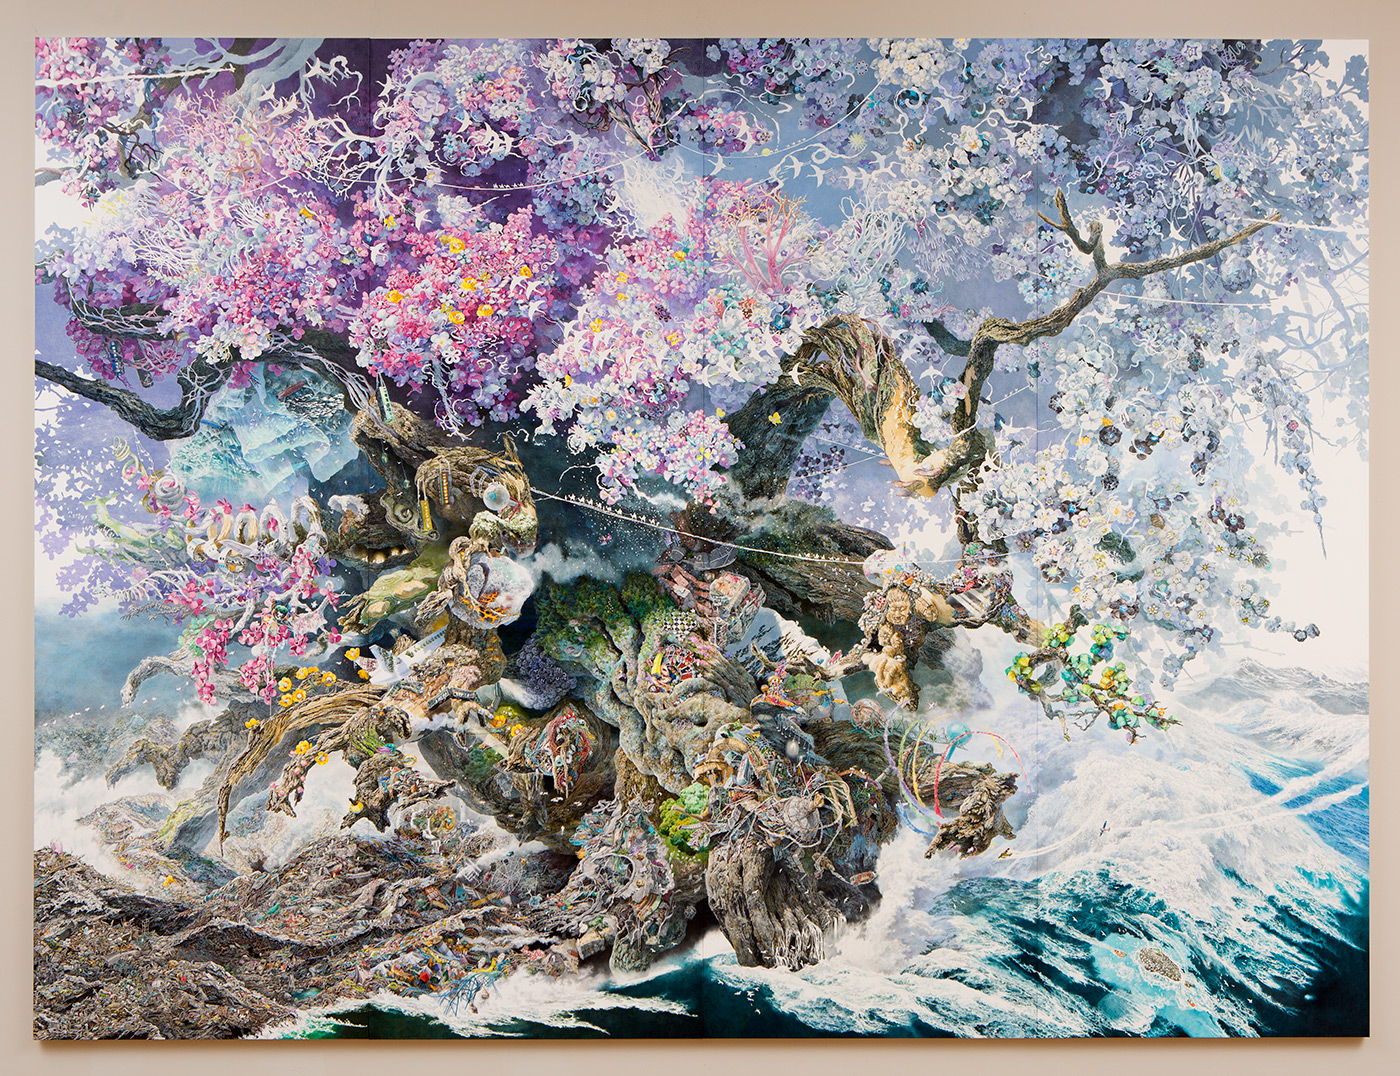 Rebirth: Artist Manabu Ikeda Unveils a Monumental Pen & Ink Drawing Nearly 3.5 Years in the Making (12 pics)